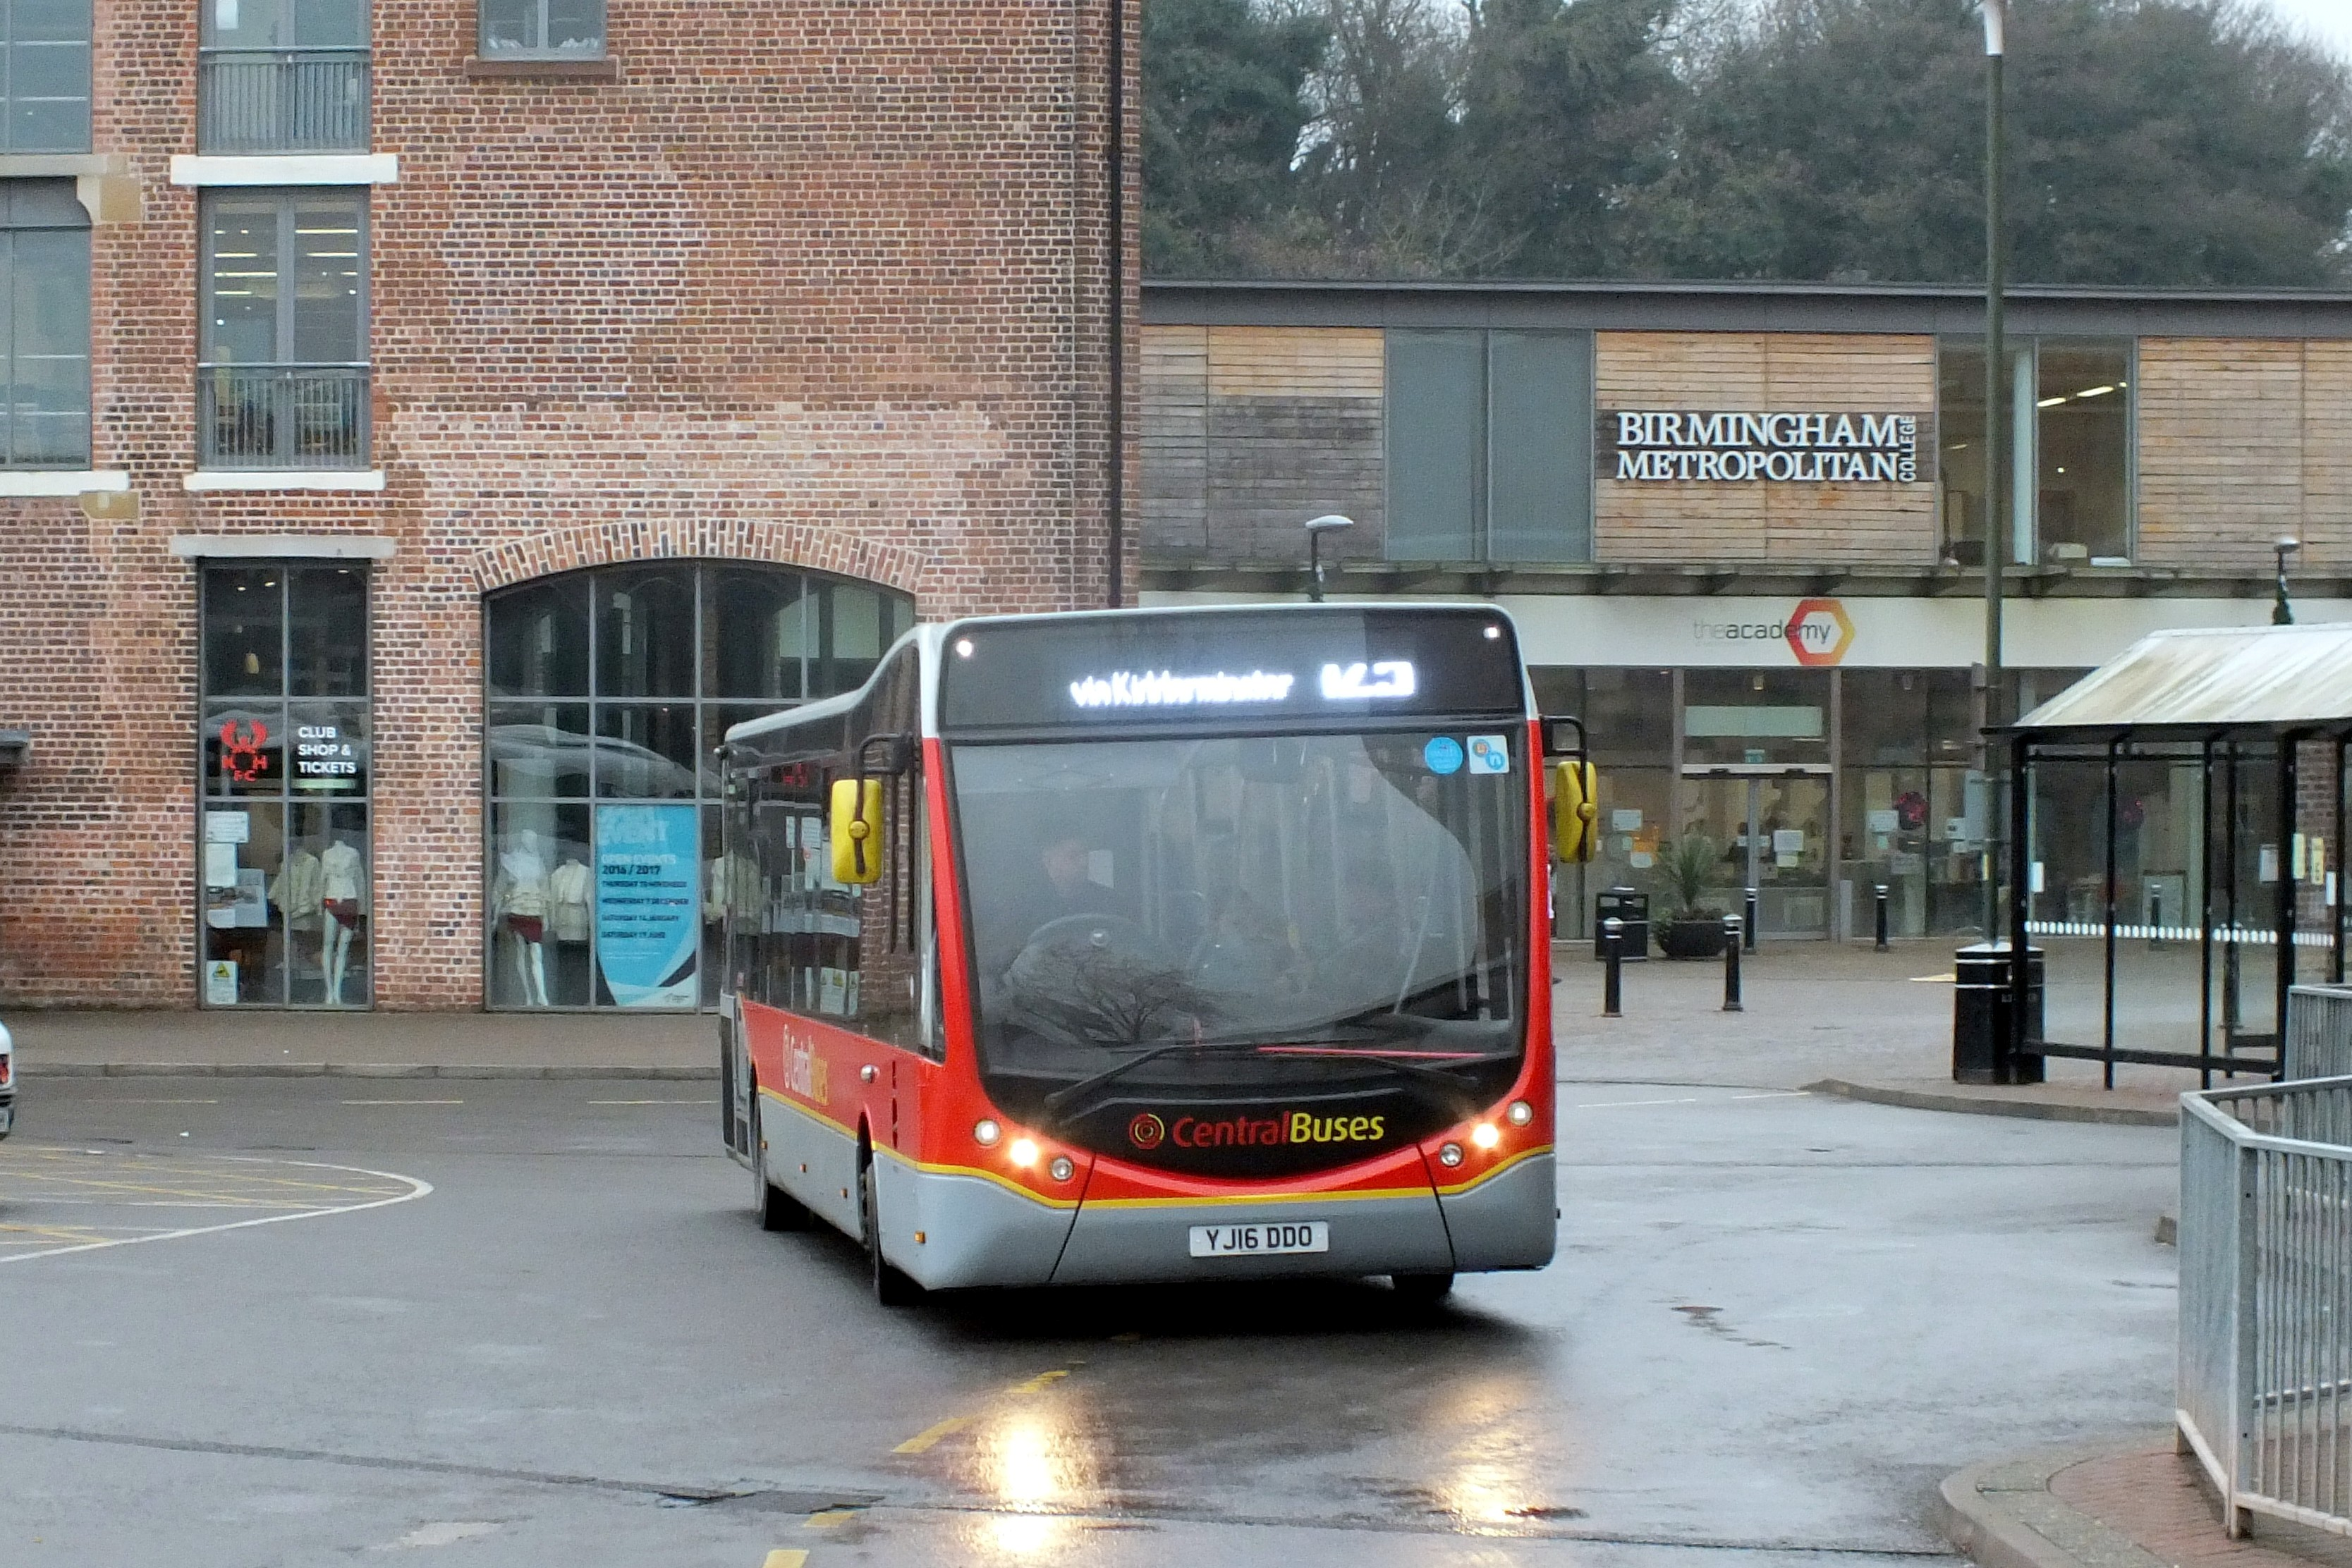 15 December 2016 Kidderminster 120.jpg